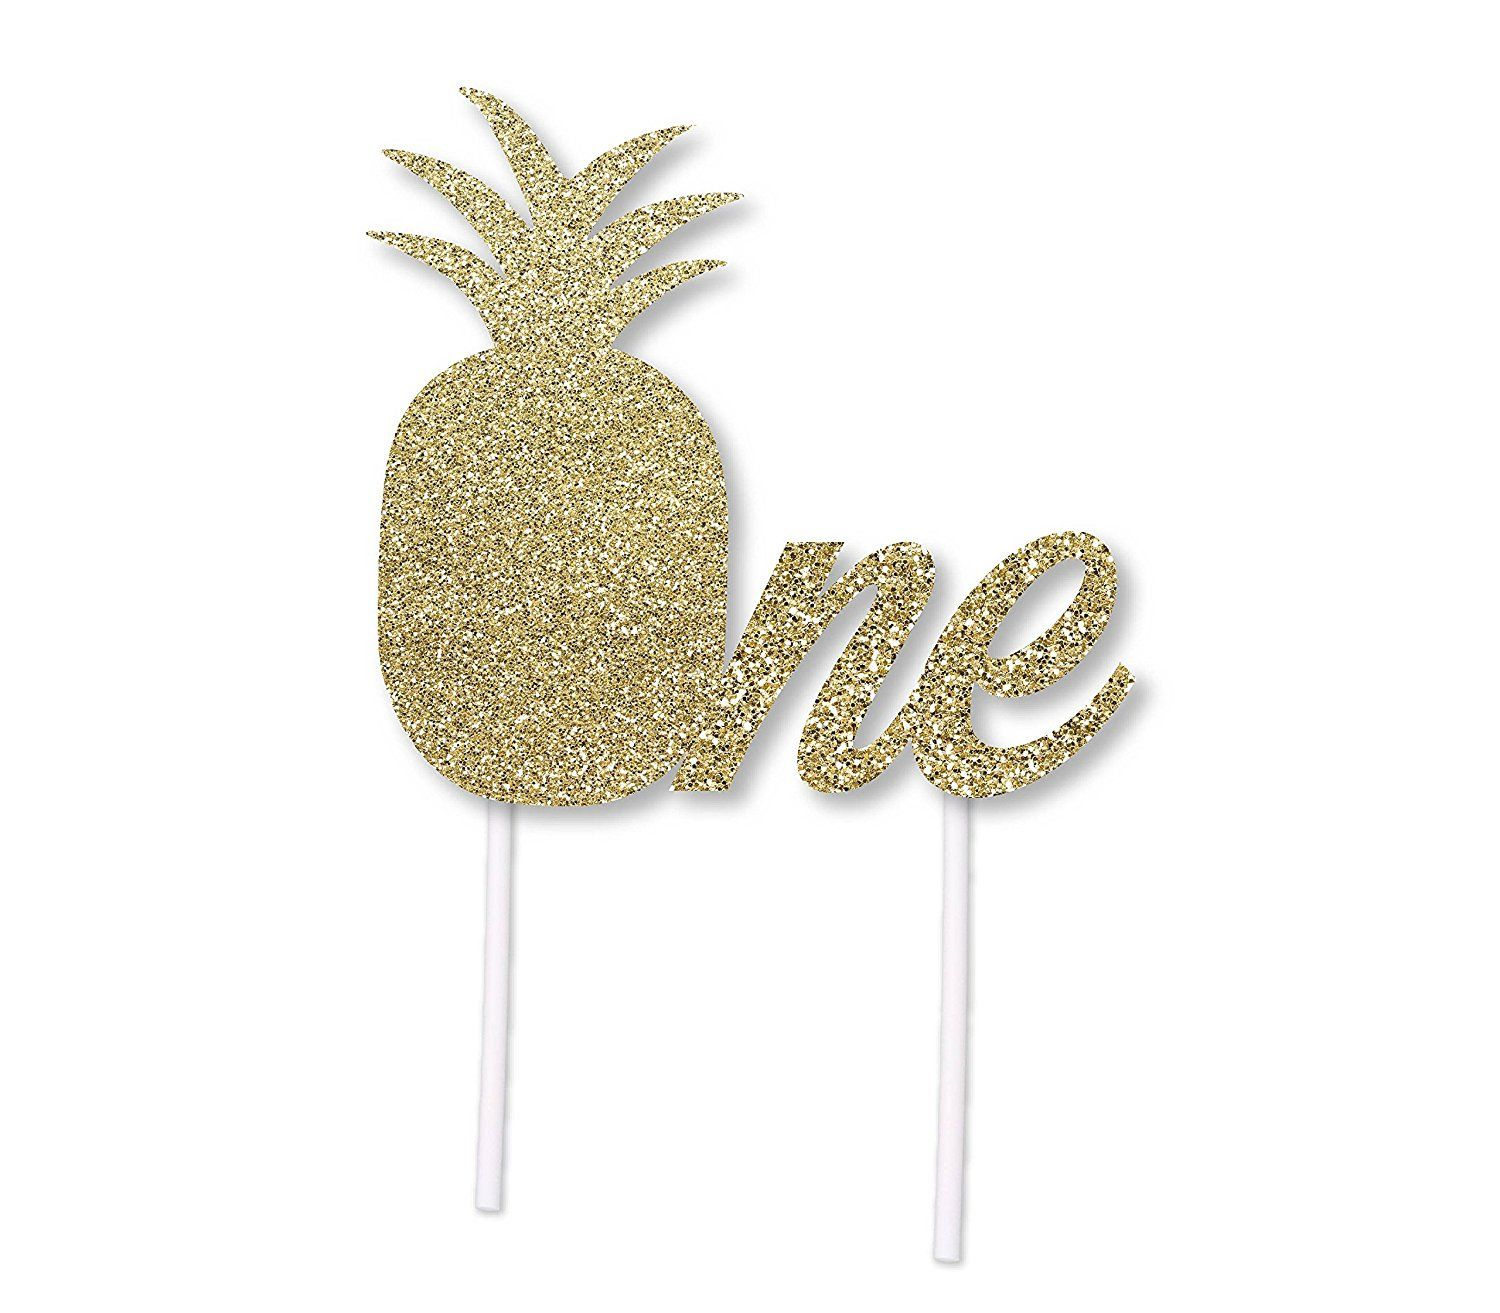 Luau party ideas pineapple birthday cake topper in gold